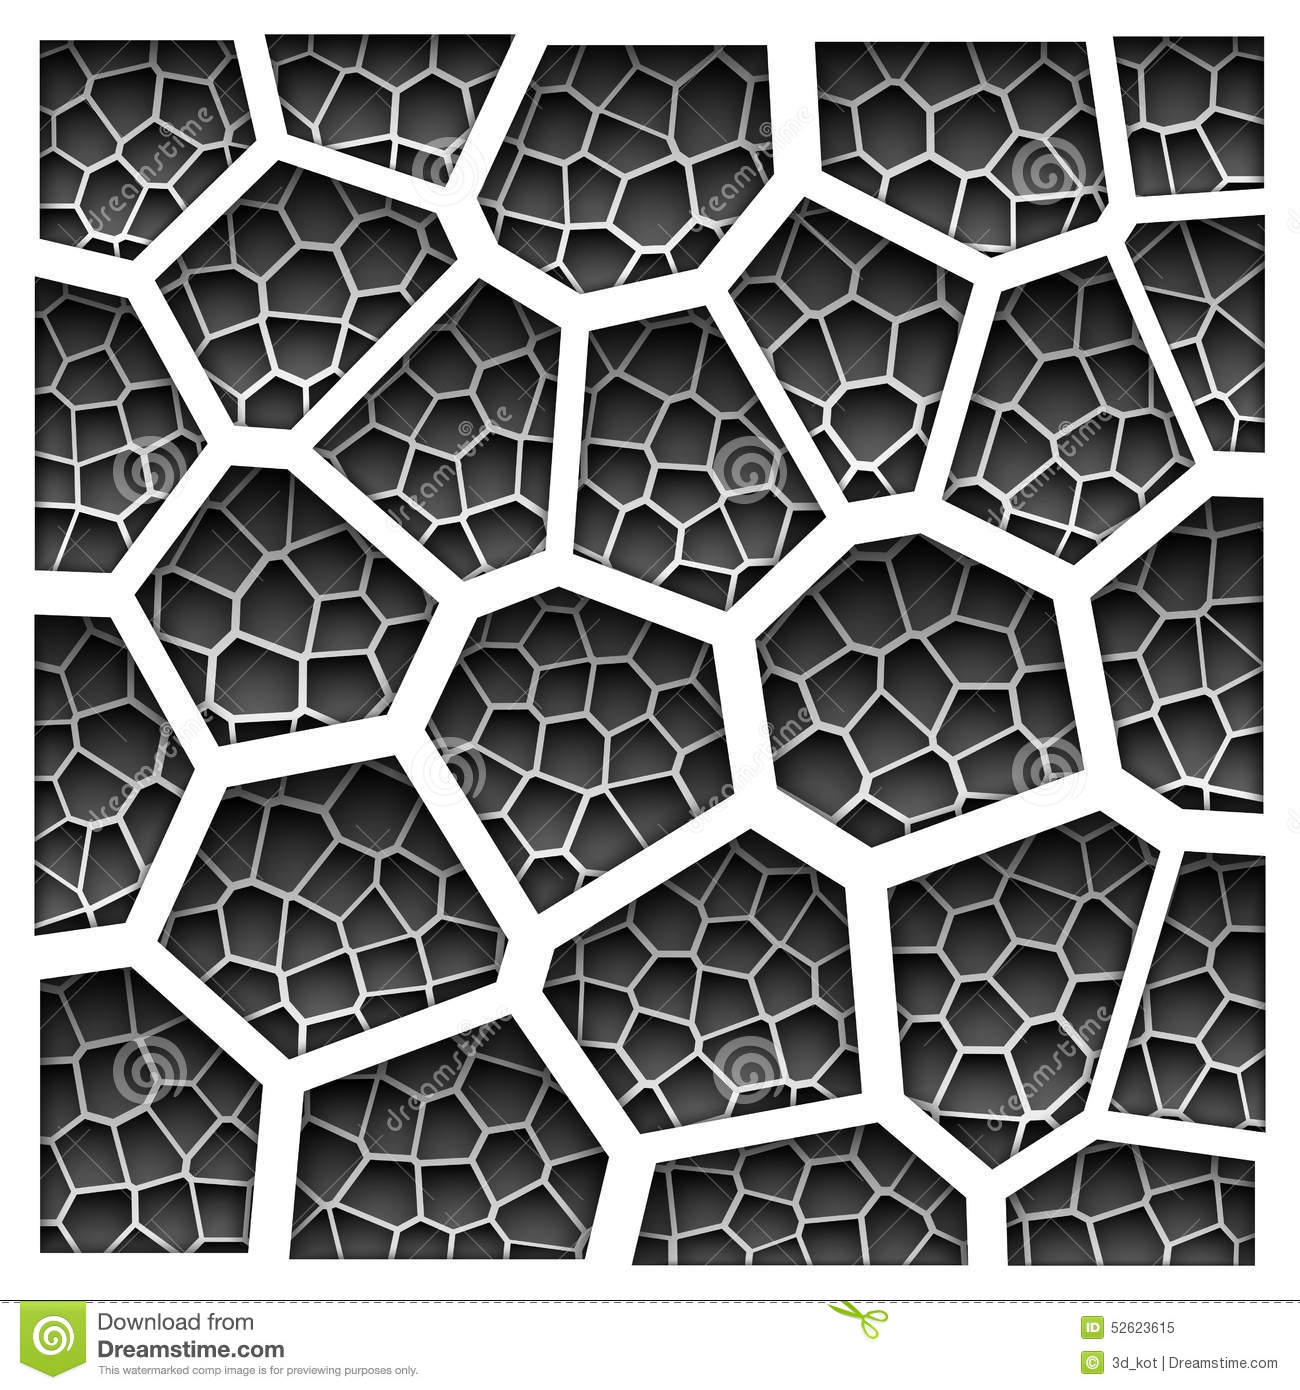 Hexagon Wallpaper 3d Abstract Grayscale Geometric Pattern Stock Vector Image